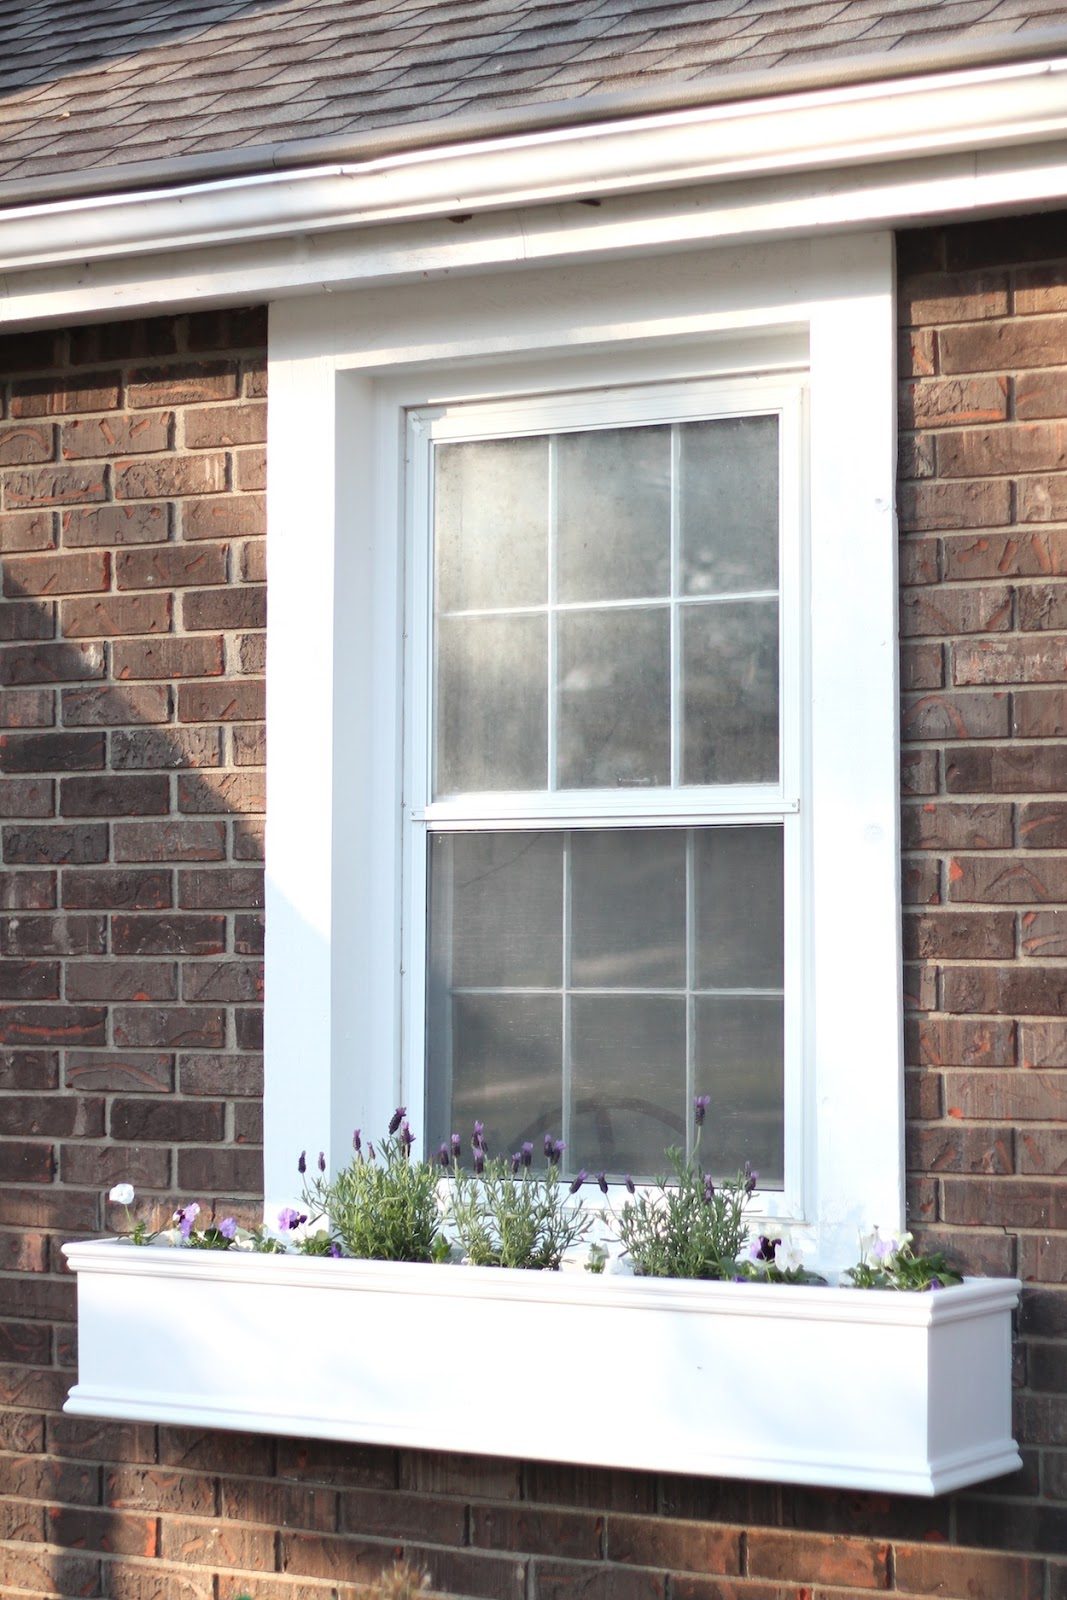 How To Make Window Boxes Diy Window Planters To Add